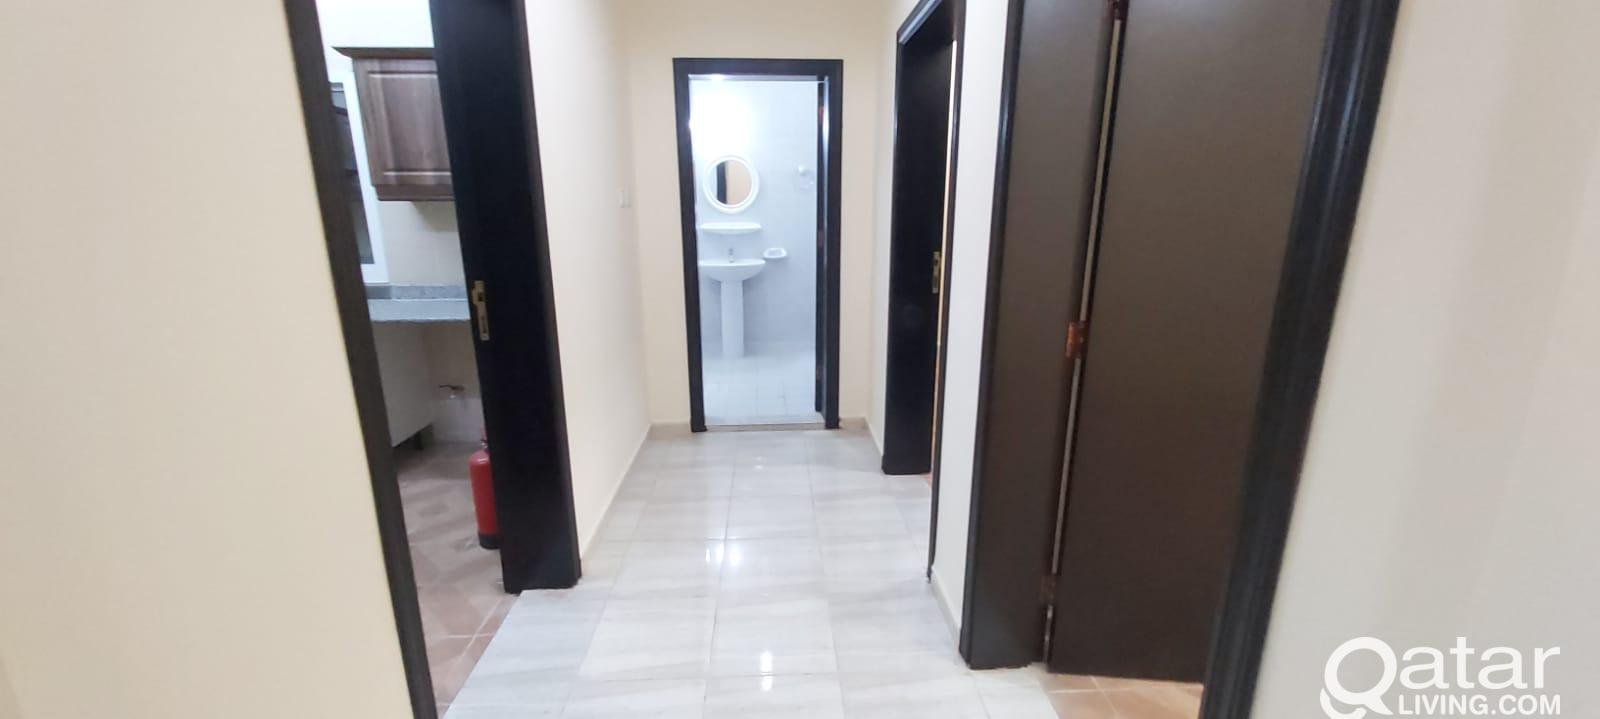 Special Offer 2 Bed Room and Hall with 2 Bathroom